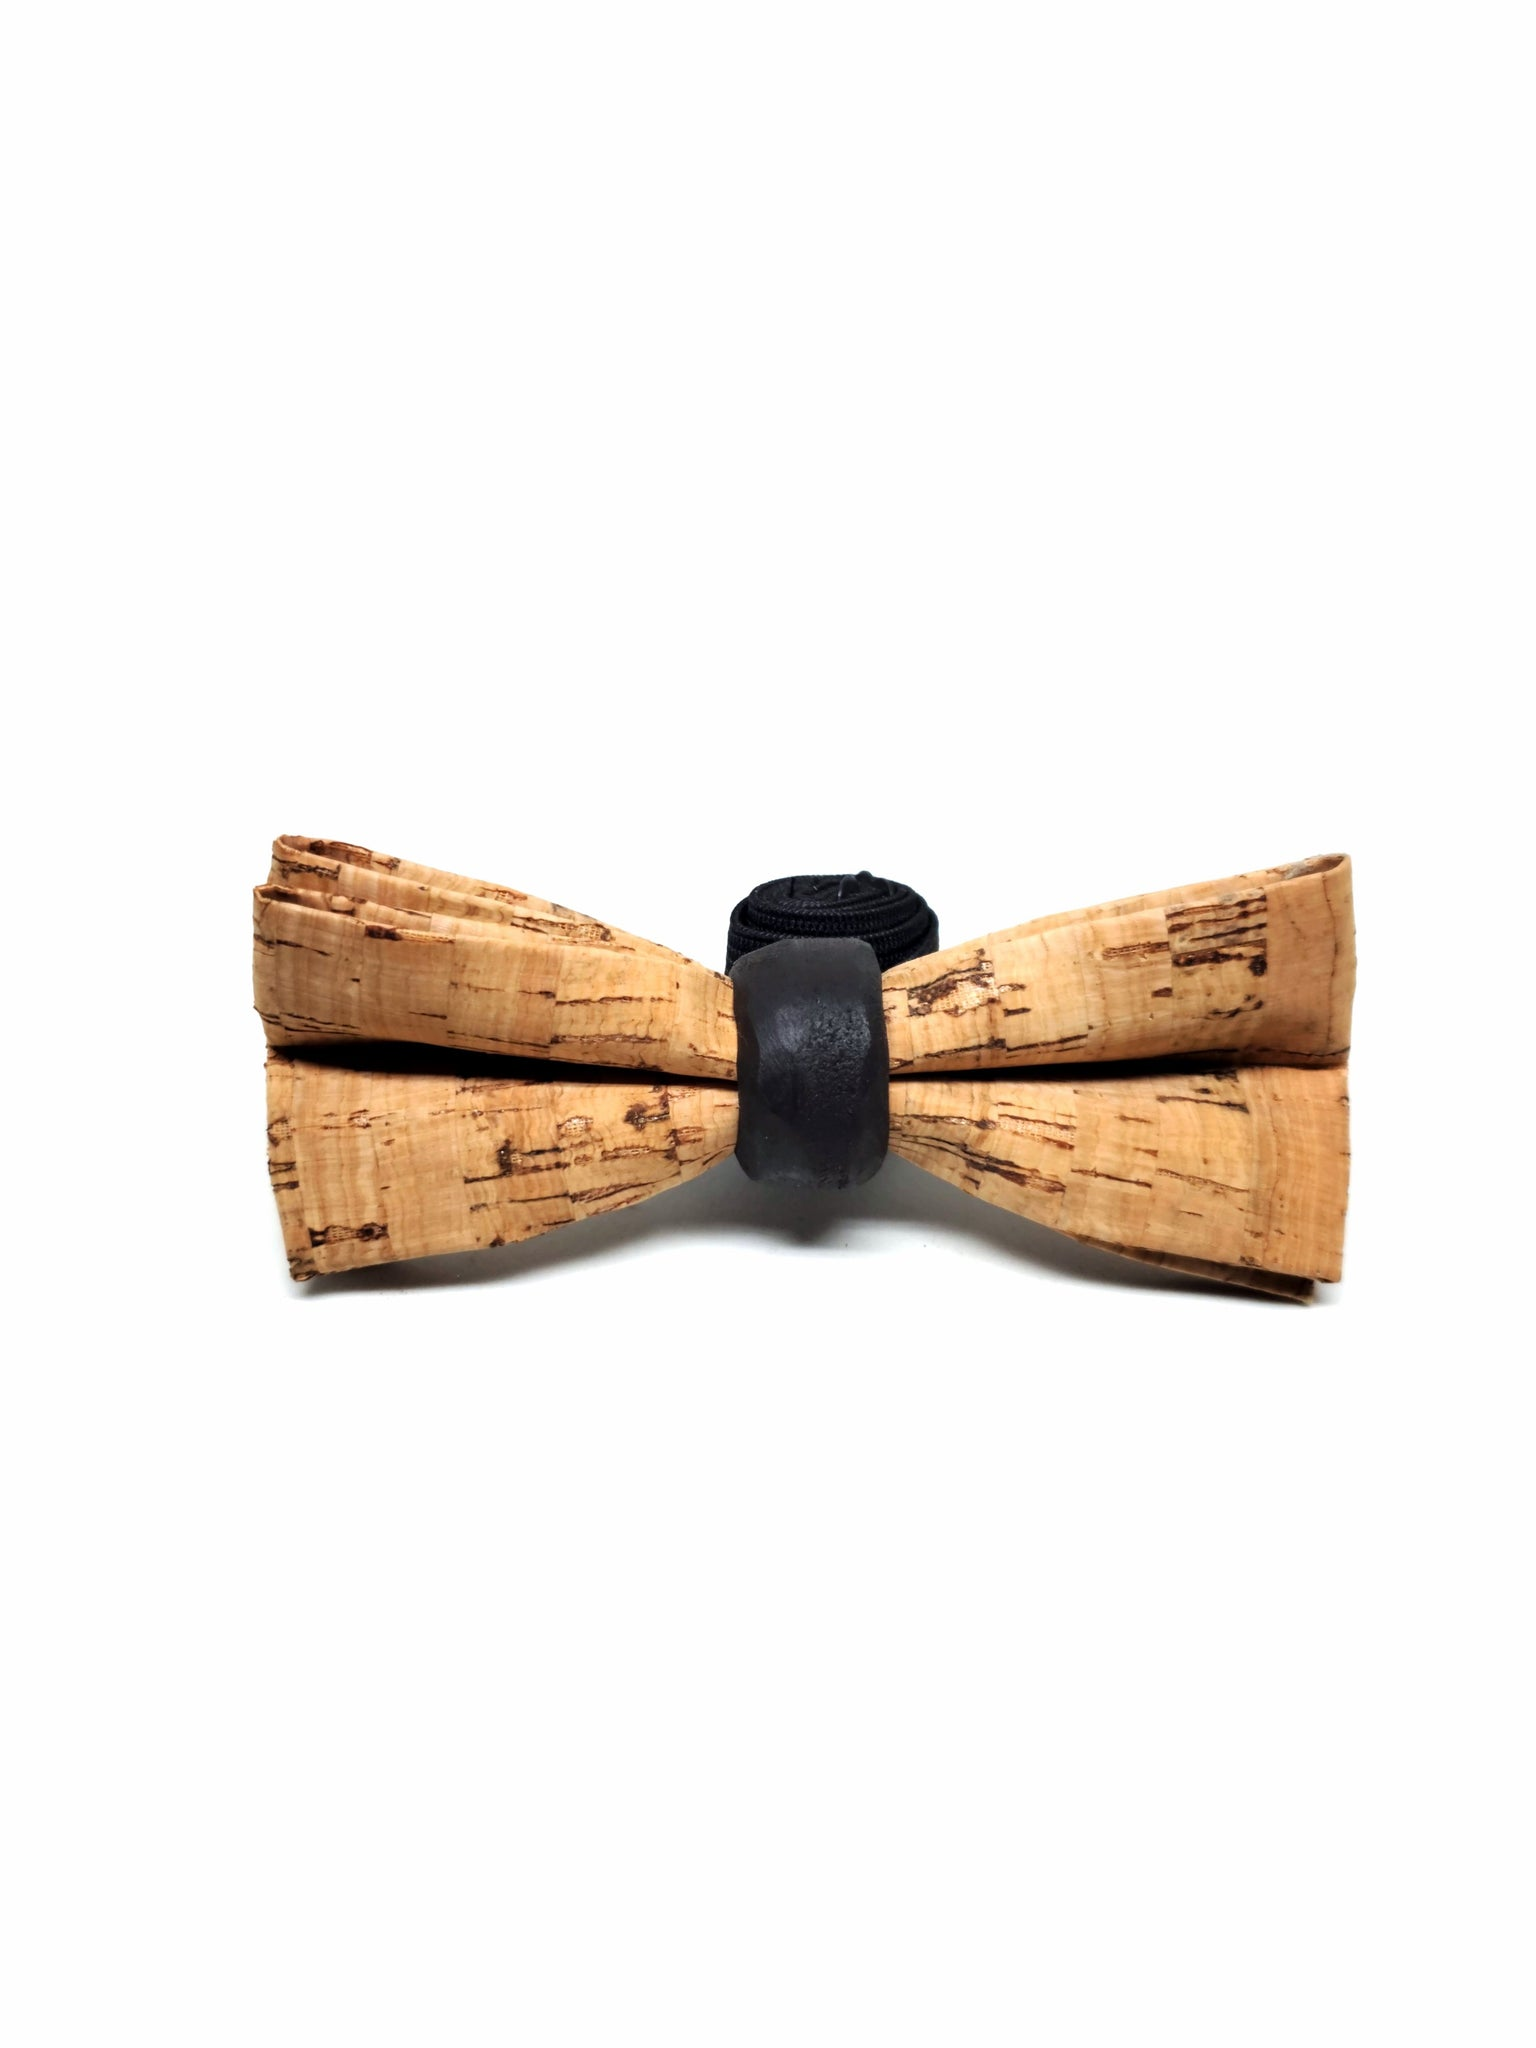 cork and wood bowtie